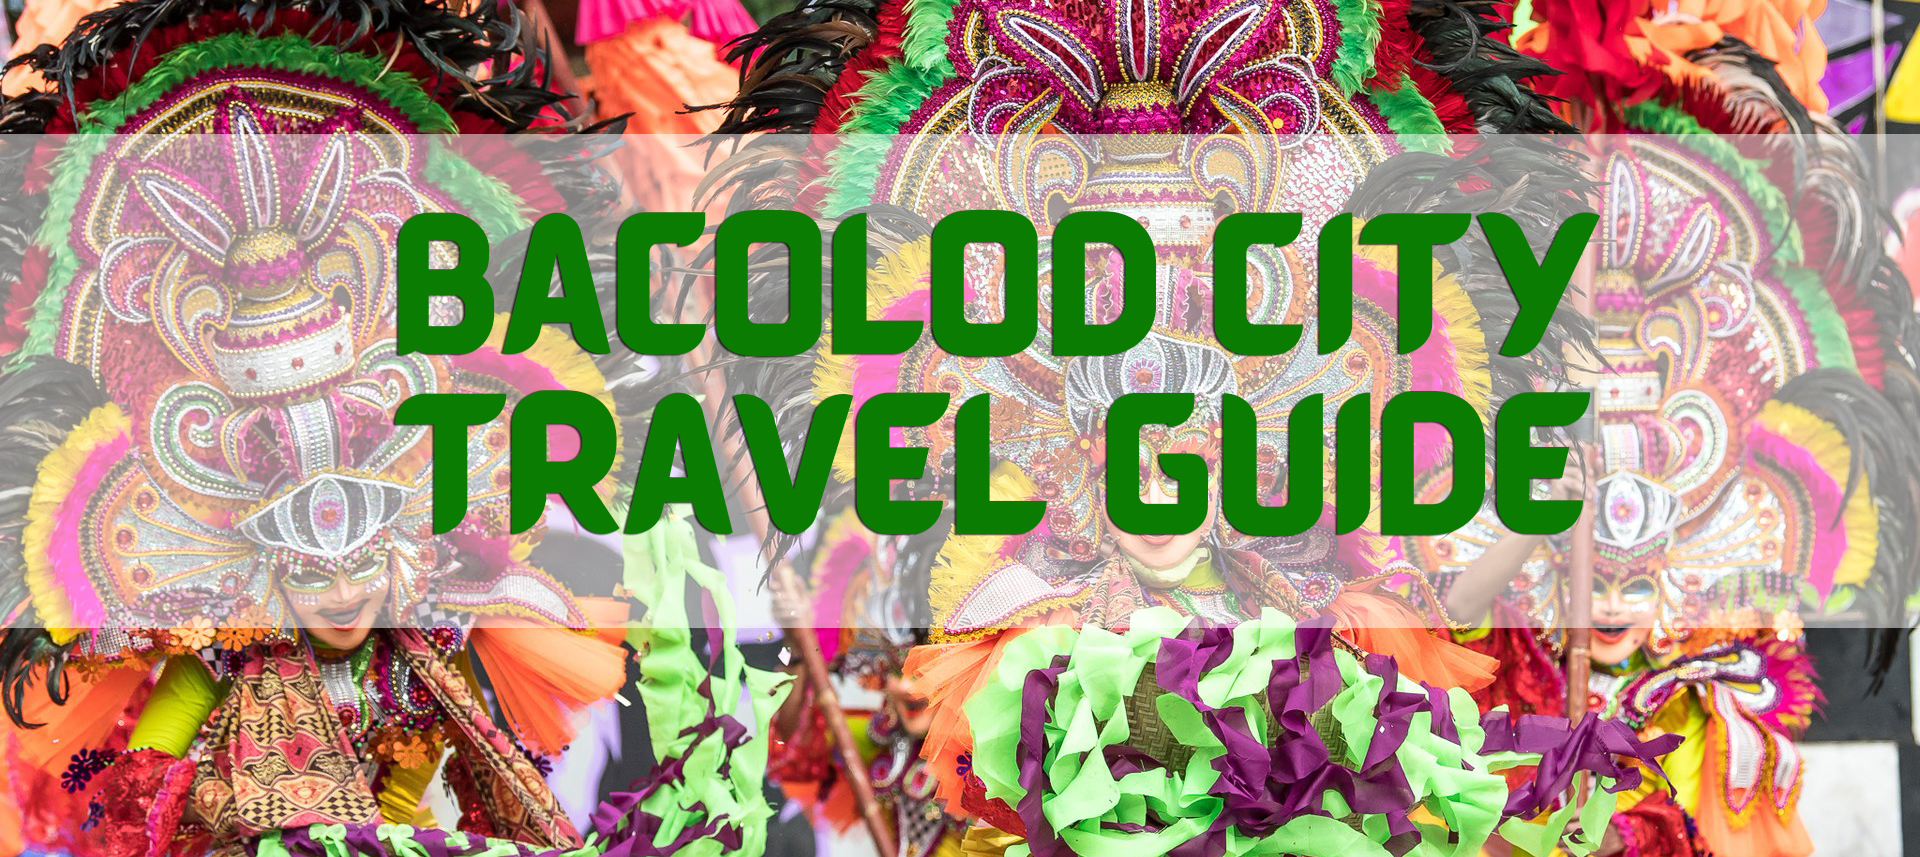 Bacolod City: Top 10 Must Visit Places, Attractions, Itinerary, Travel Tips & Budget